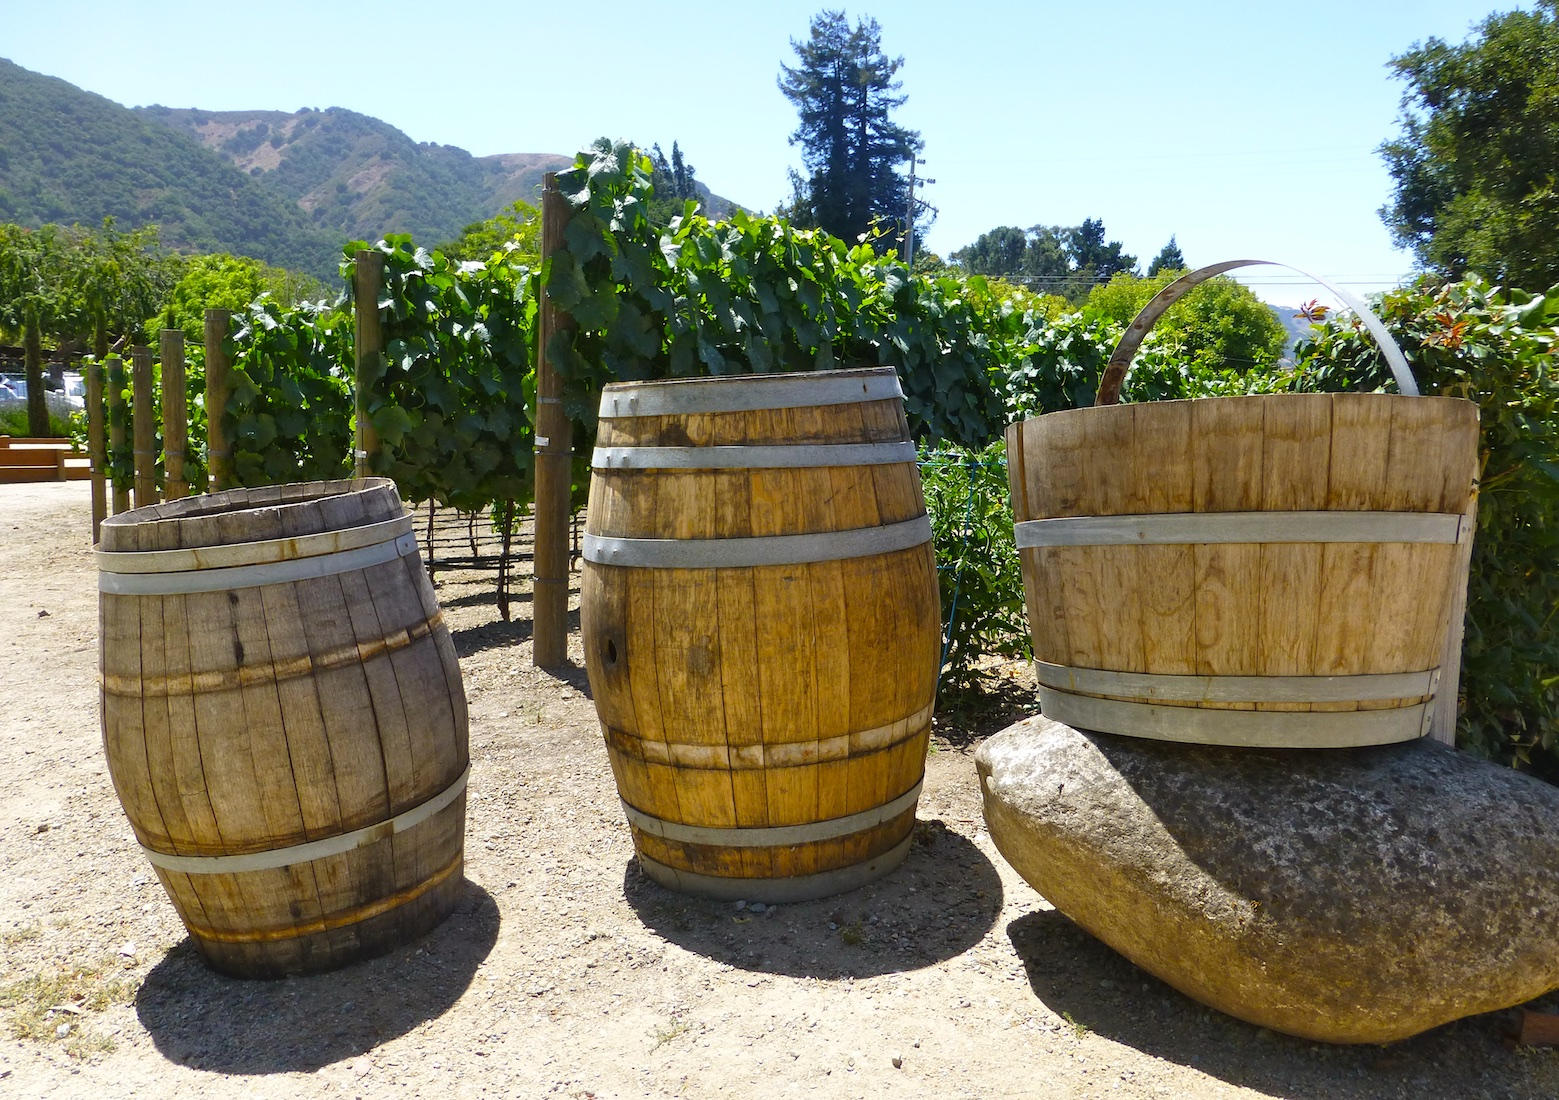 Wine tasting in Carmel Valley, California